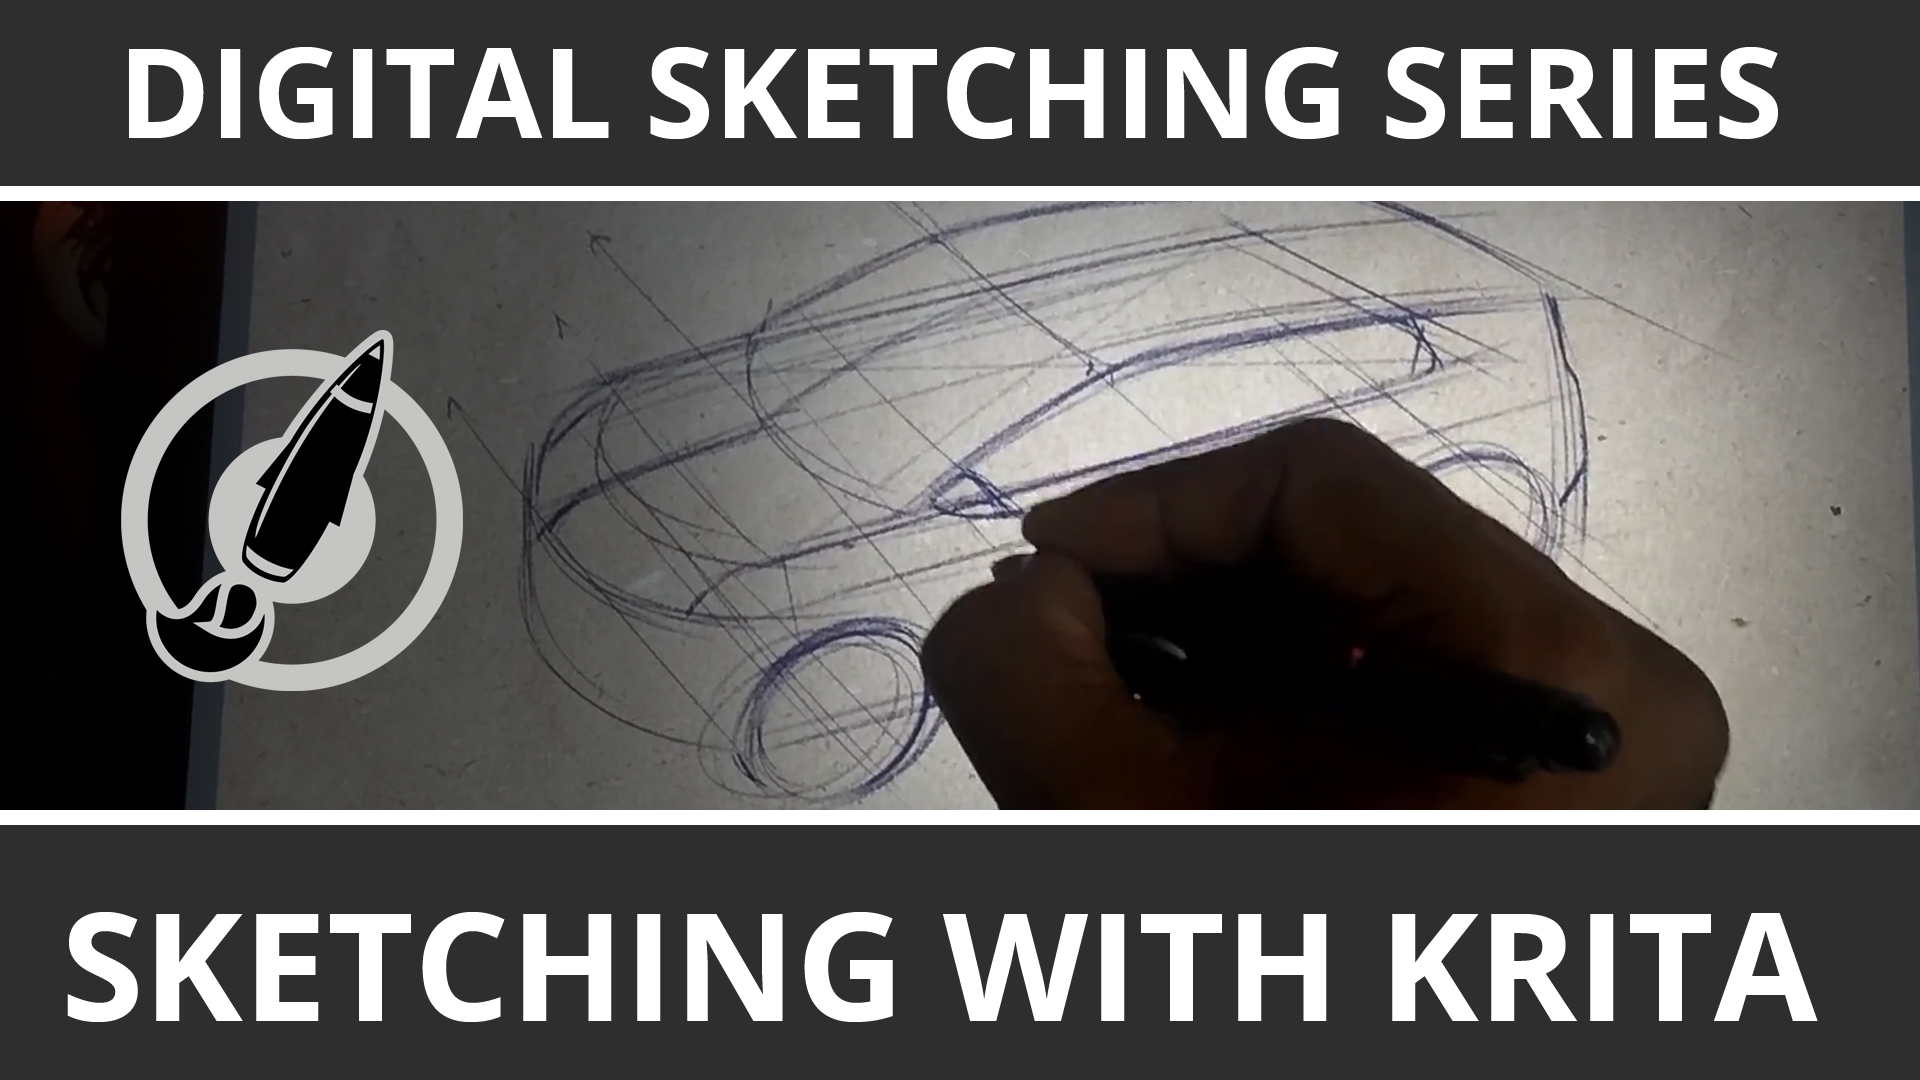 GETTING STARTED WITH DIGITAL SKETCHING WITH KRITA